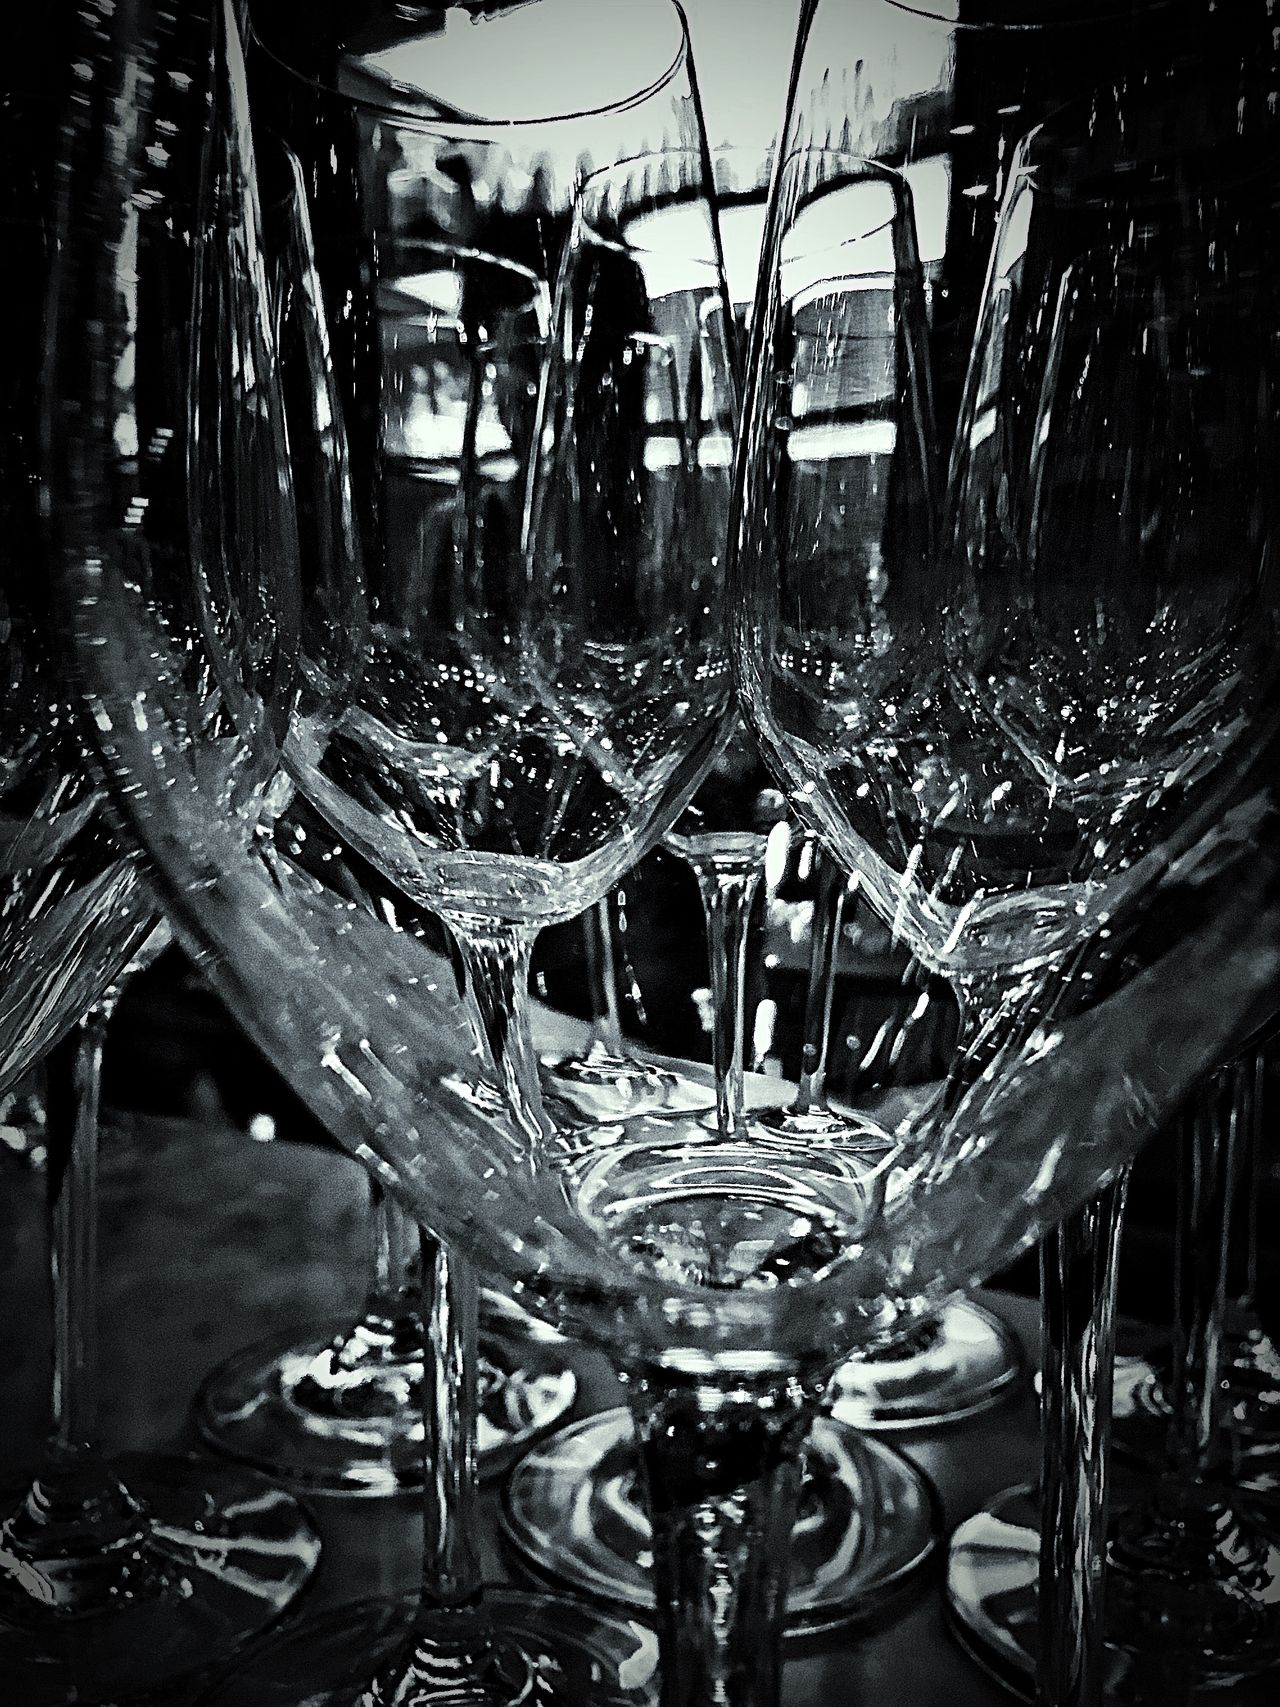 Reflections Wine Glasses Small Business Glasses Clean Summer Summer Views Restaurant Urban Taking Photos Cafe Commercial Photography